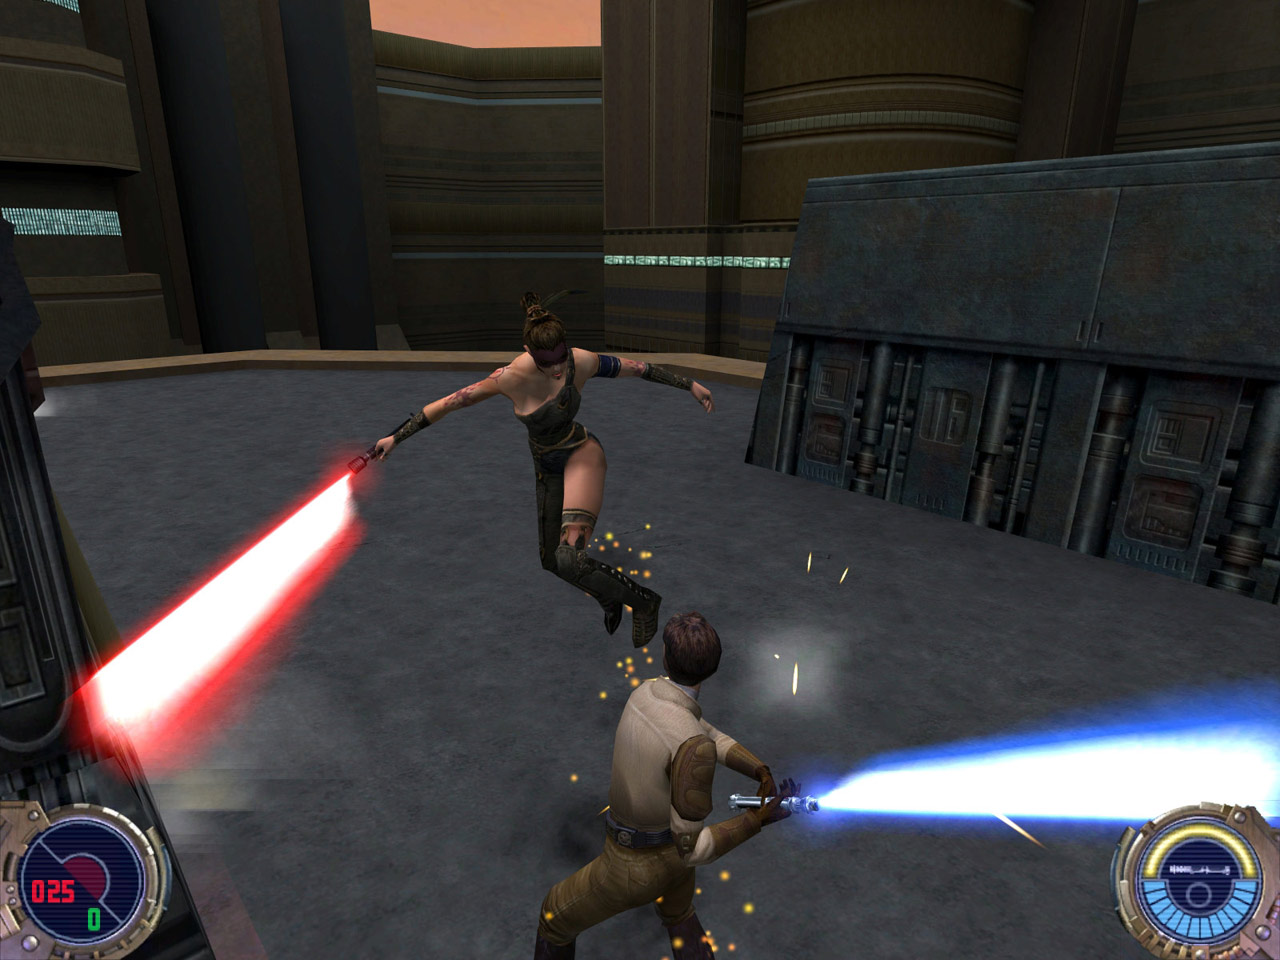 Star Wars Jedi Knight II: Jedi Outcast - Replaying the